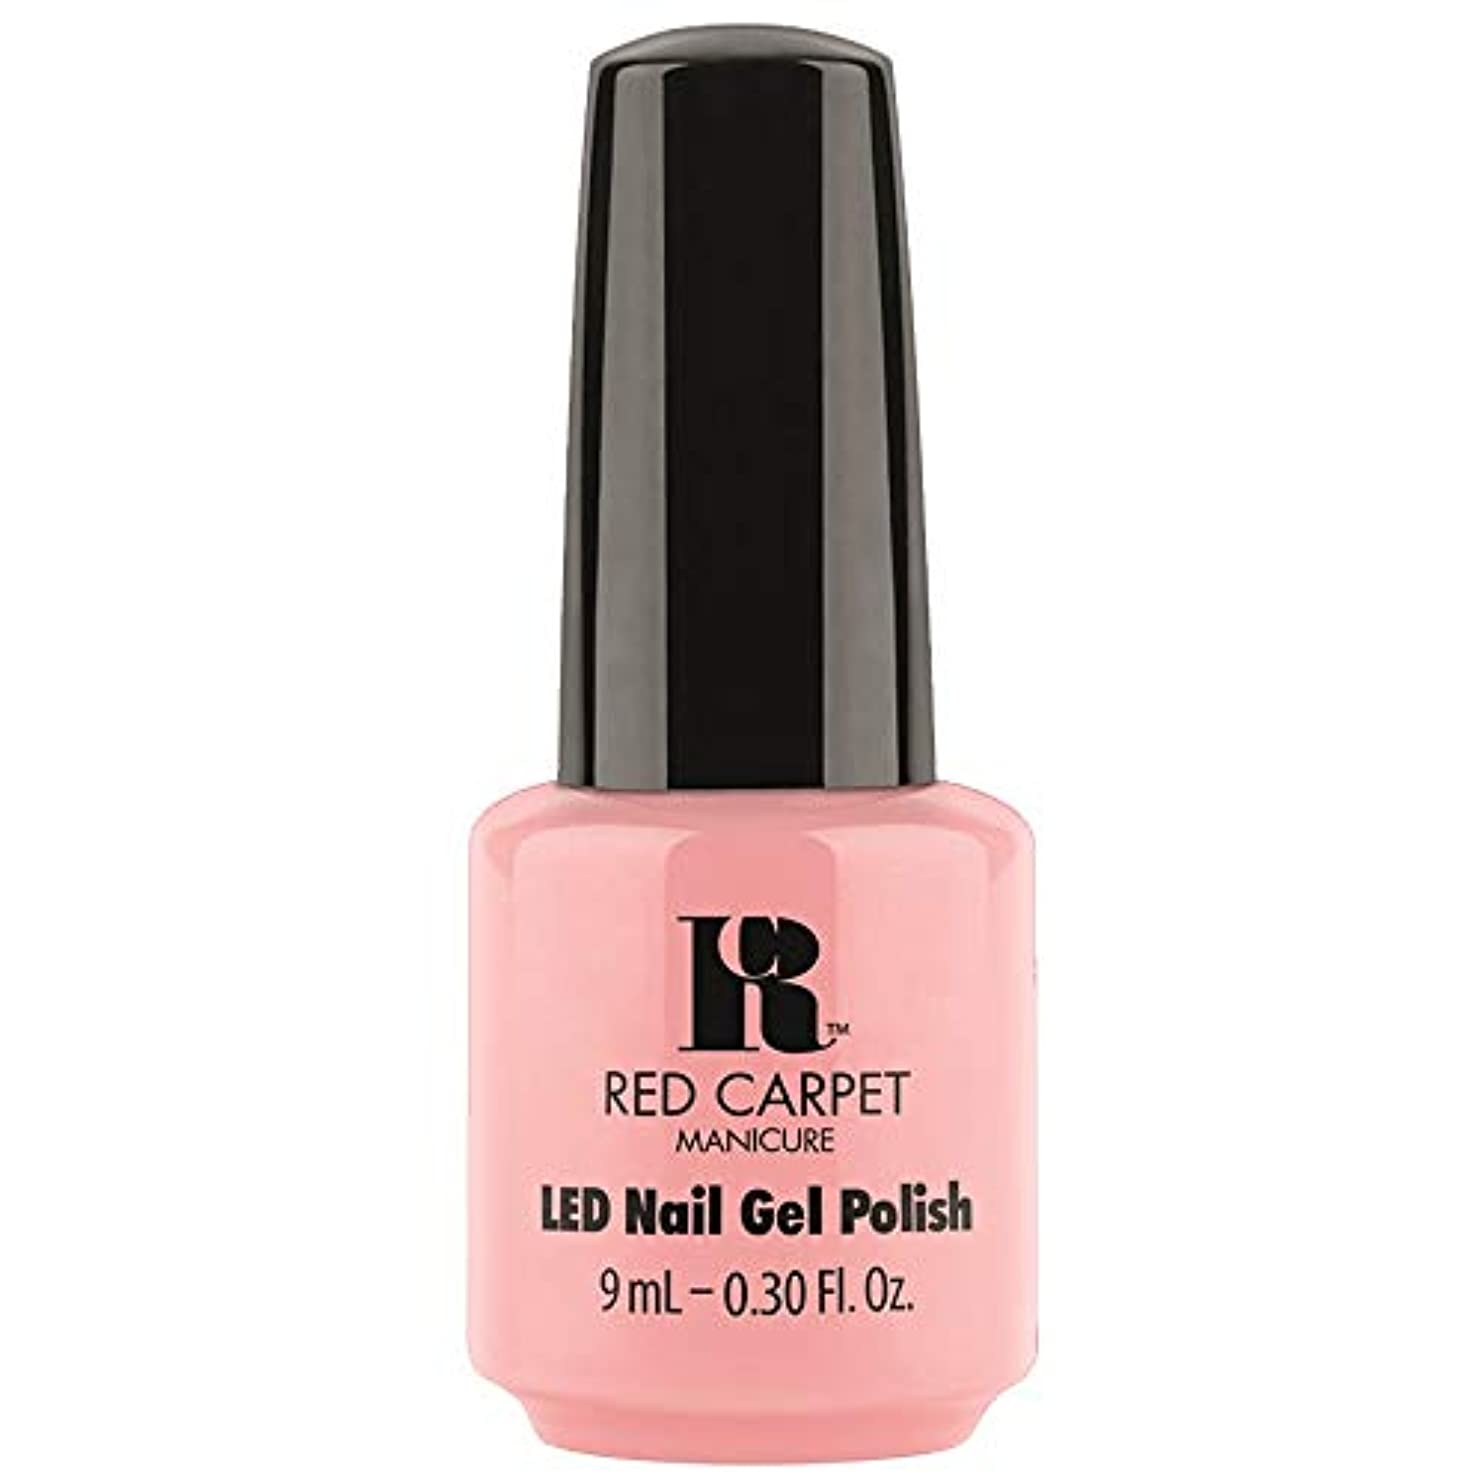 Red Carpet Manicure - LED Nail Gel Polish - Frolic in the Sand - 0.3oz / 9ml